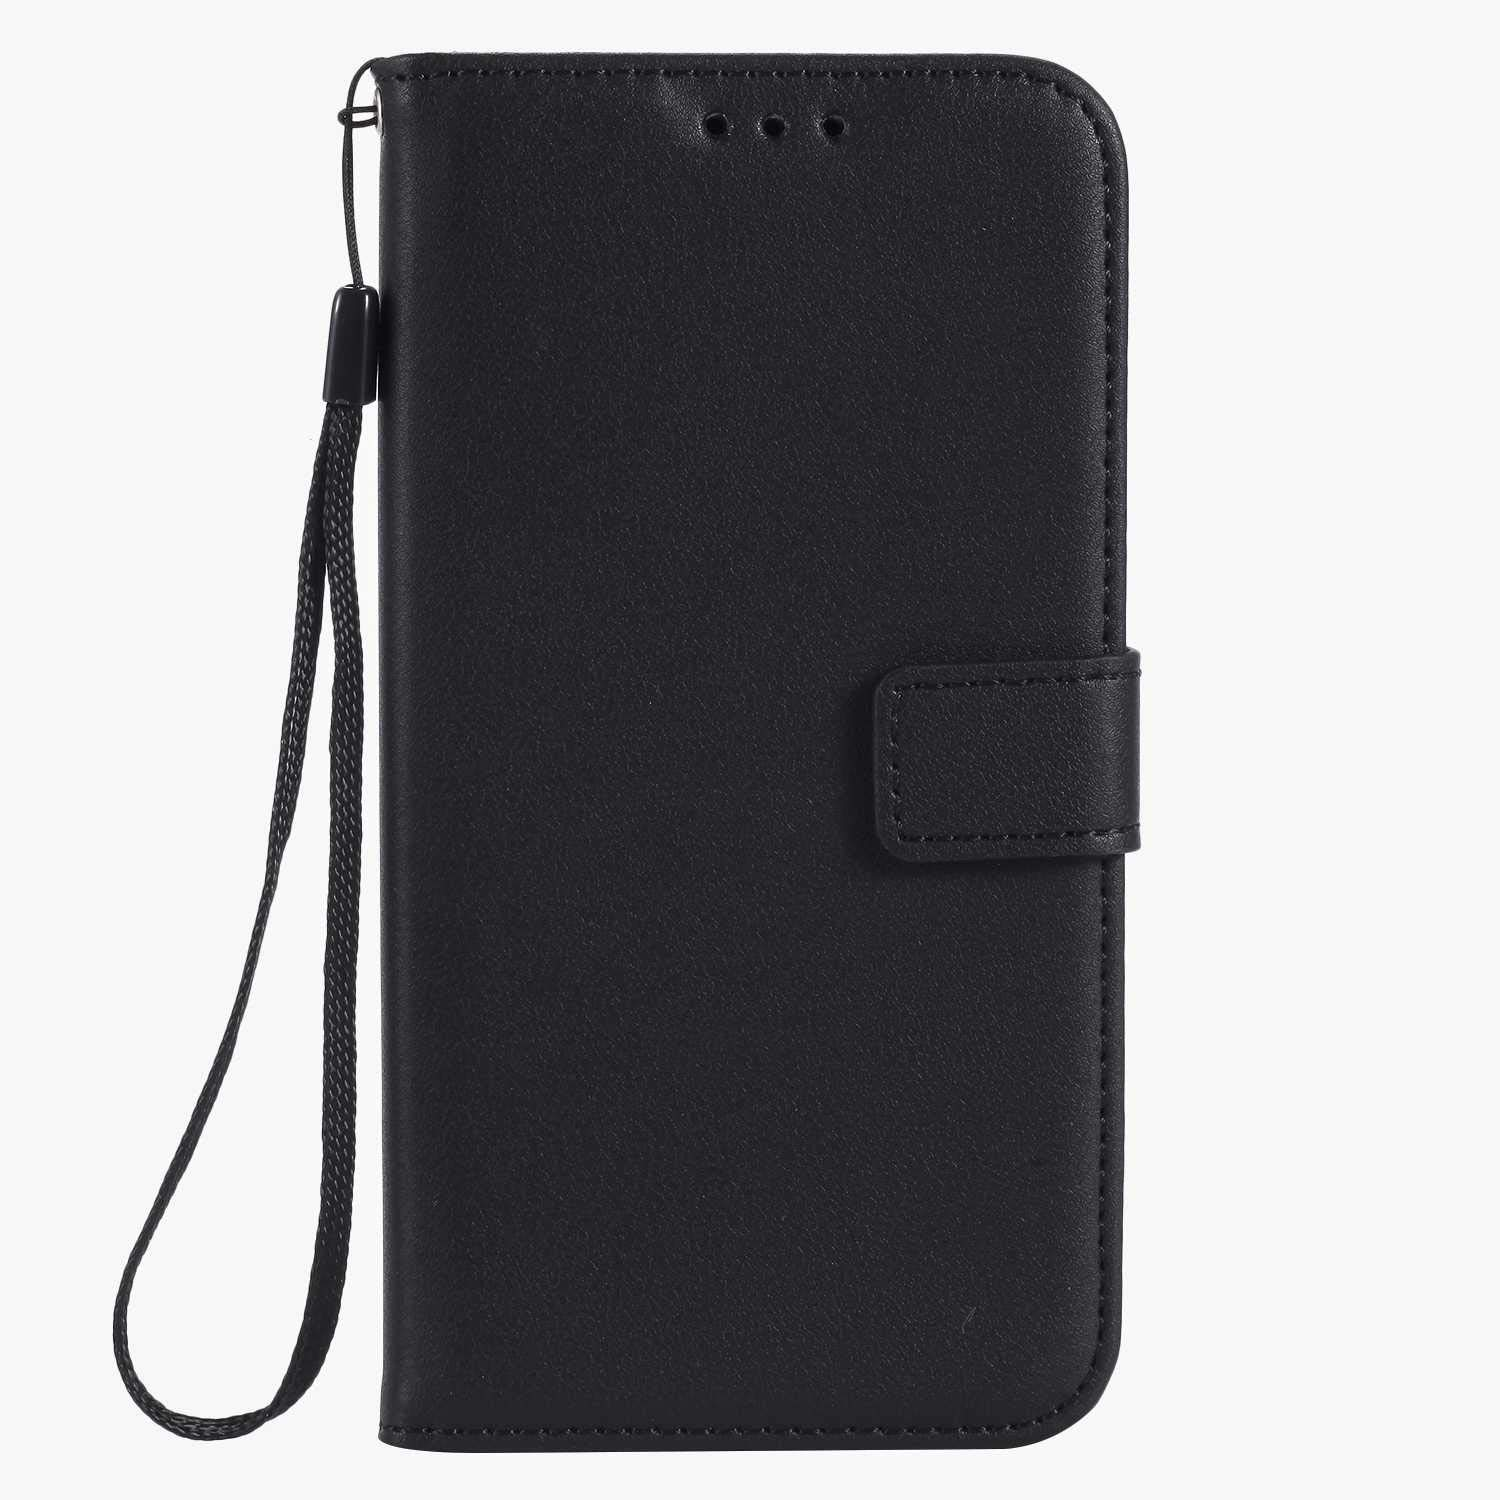 UNEXTATI Galaxy J5 Case, Leather Magnetic Closure Flip Wallet Case with Card Slot and Wrist Strap, Slim Full Body Protective Case (Black #7)